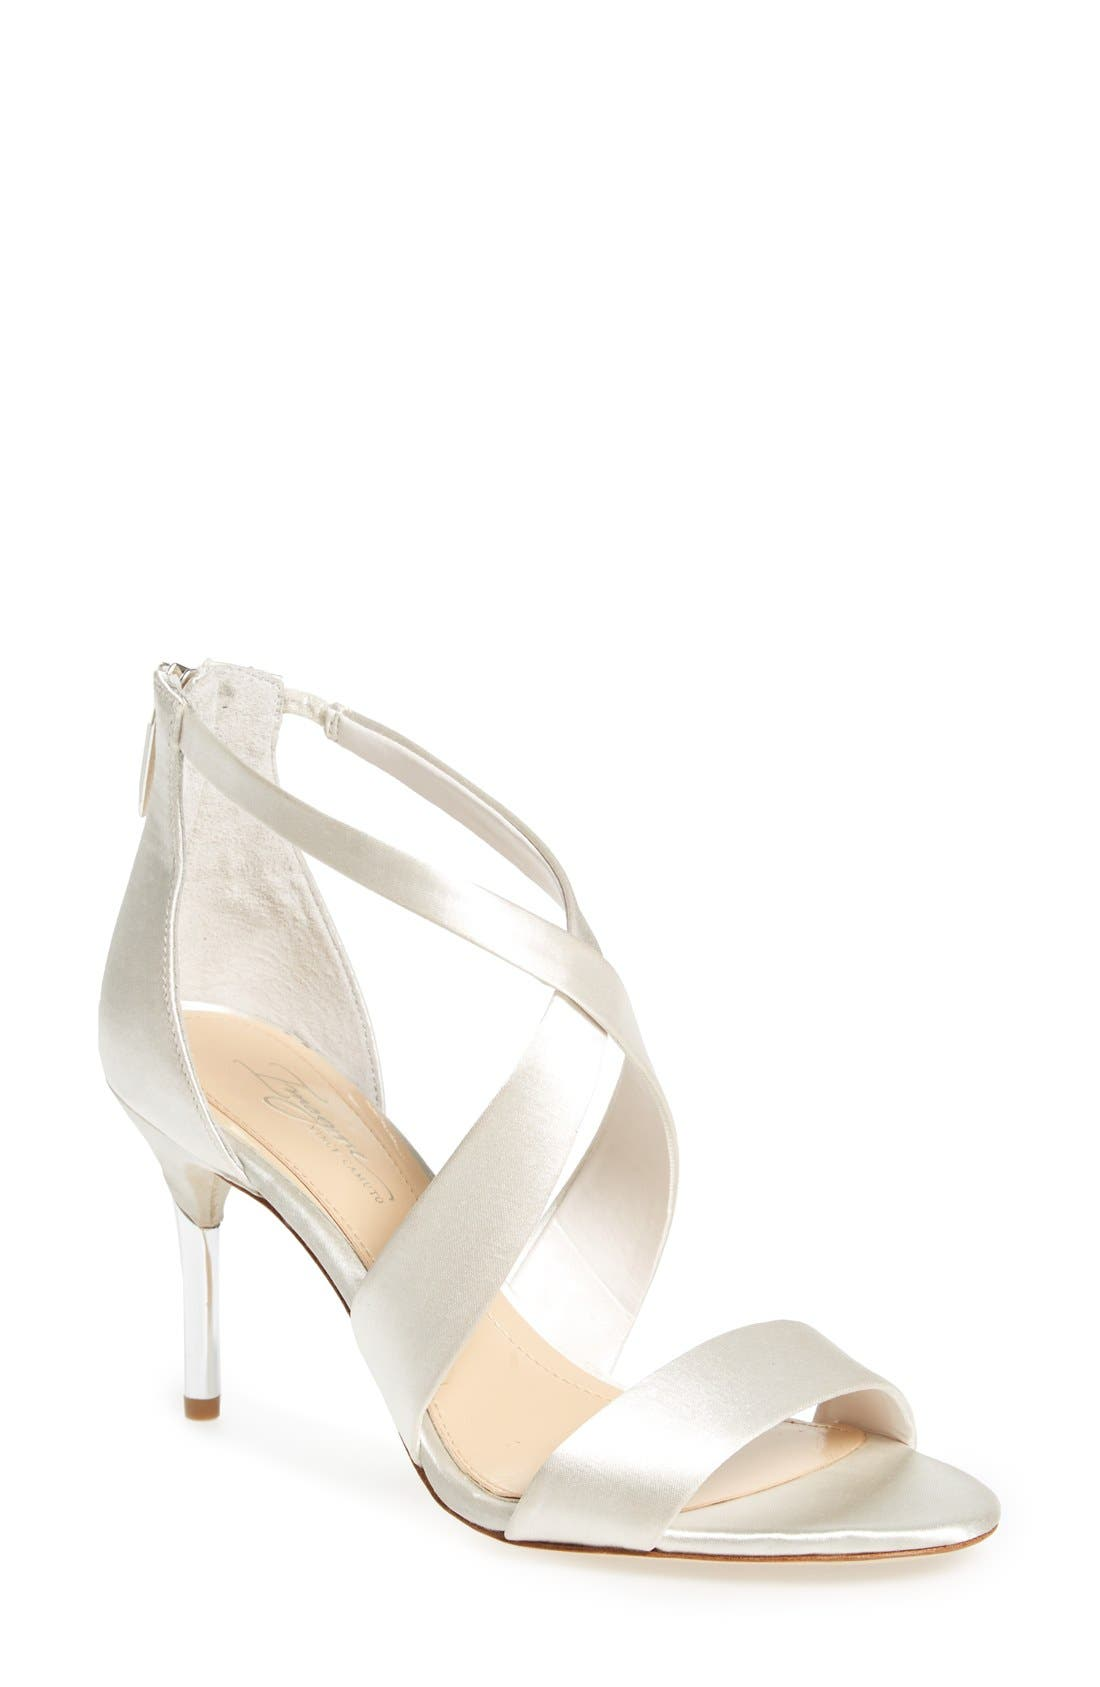 'Pascal' Sandal,                             Main thumbnail 1, color,                             Ivory Satin